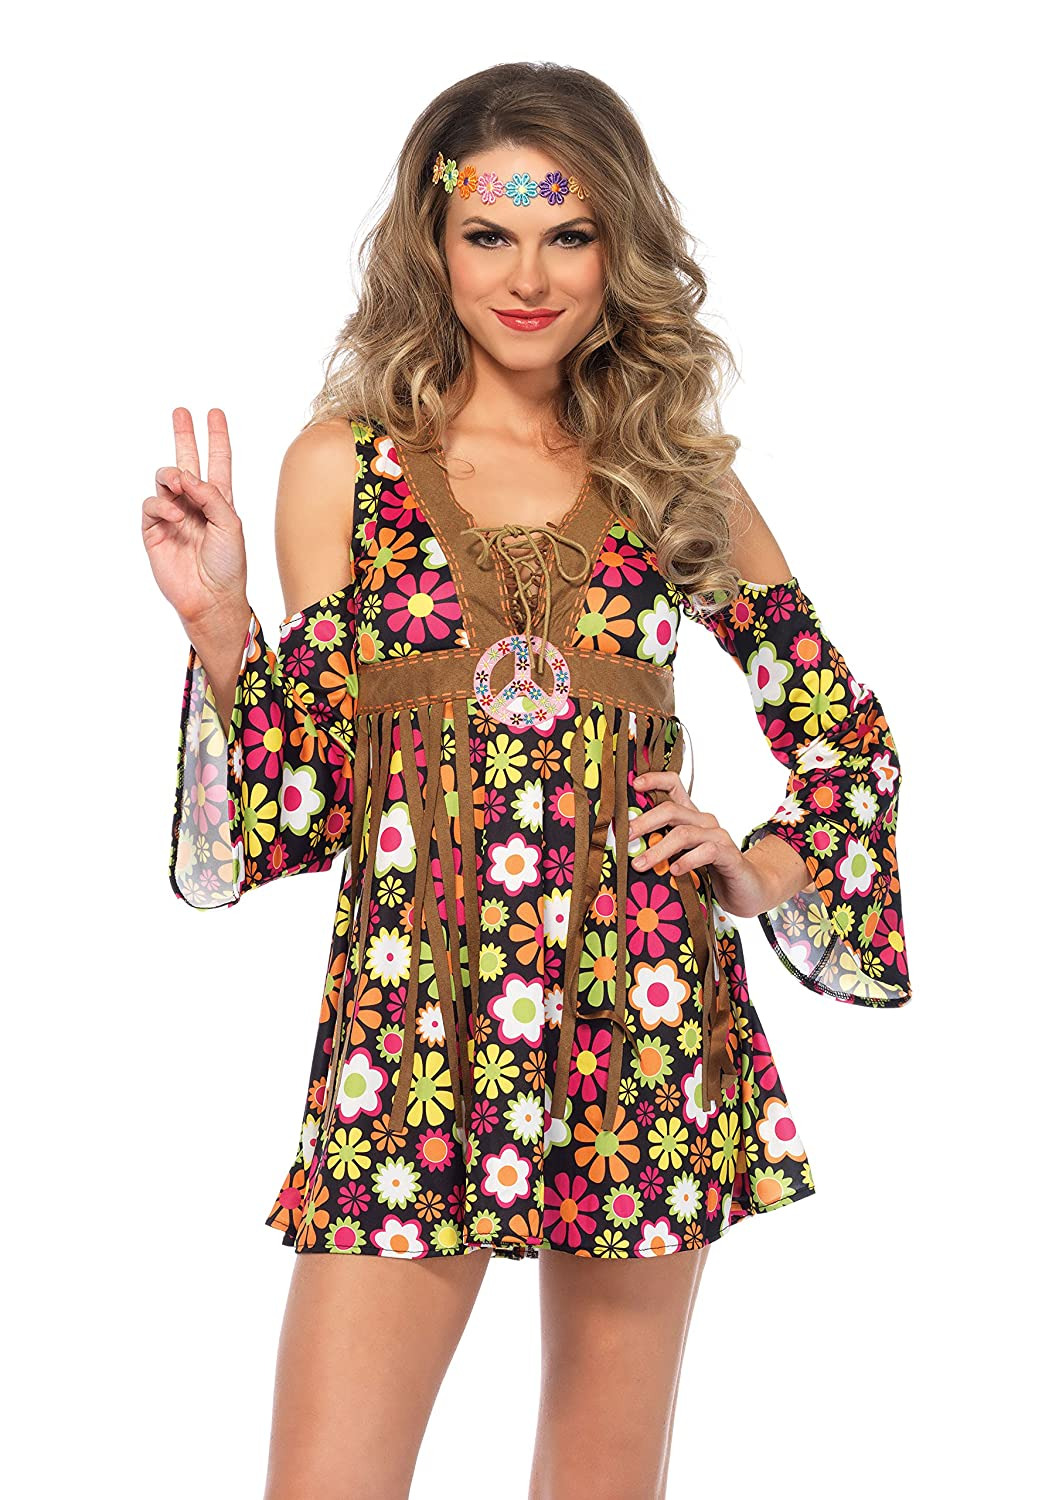 Hippie Costumes, Hippie Outfits Leg Avenue Womens Starflower Hippie Costume $24.89 AT vintagedancer.com